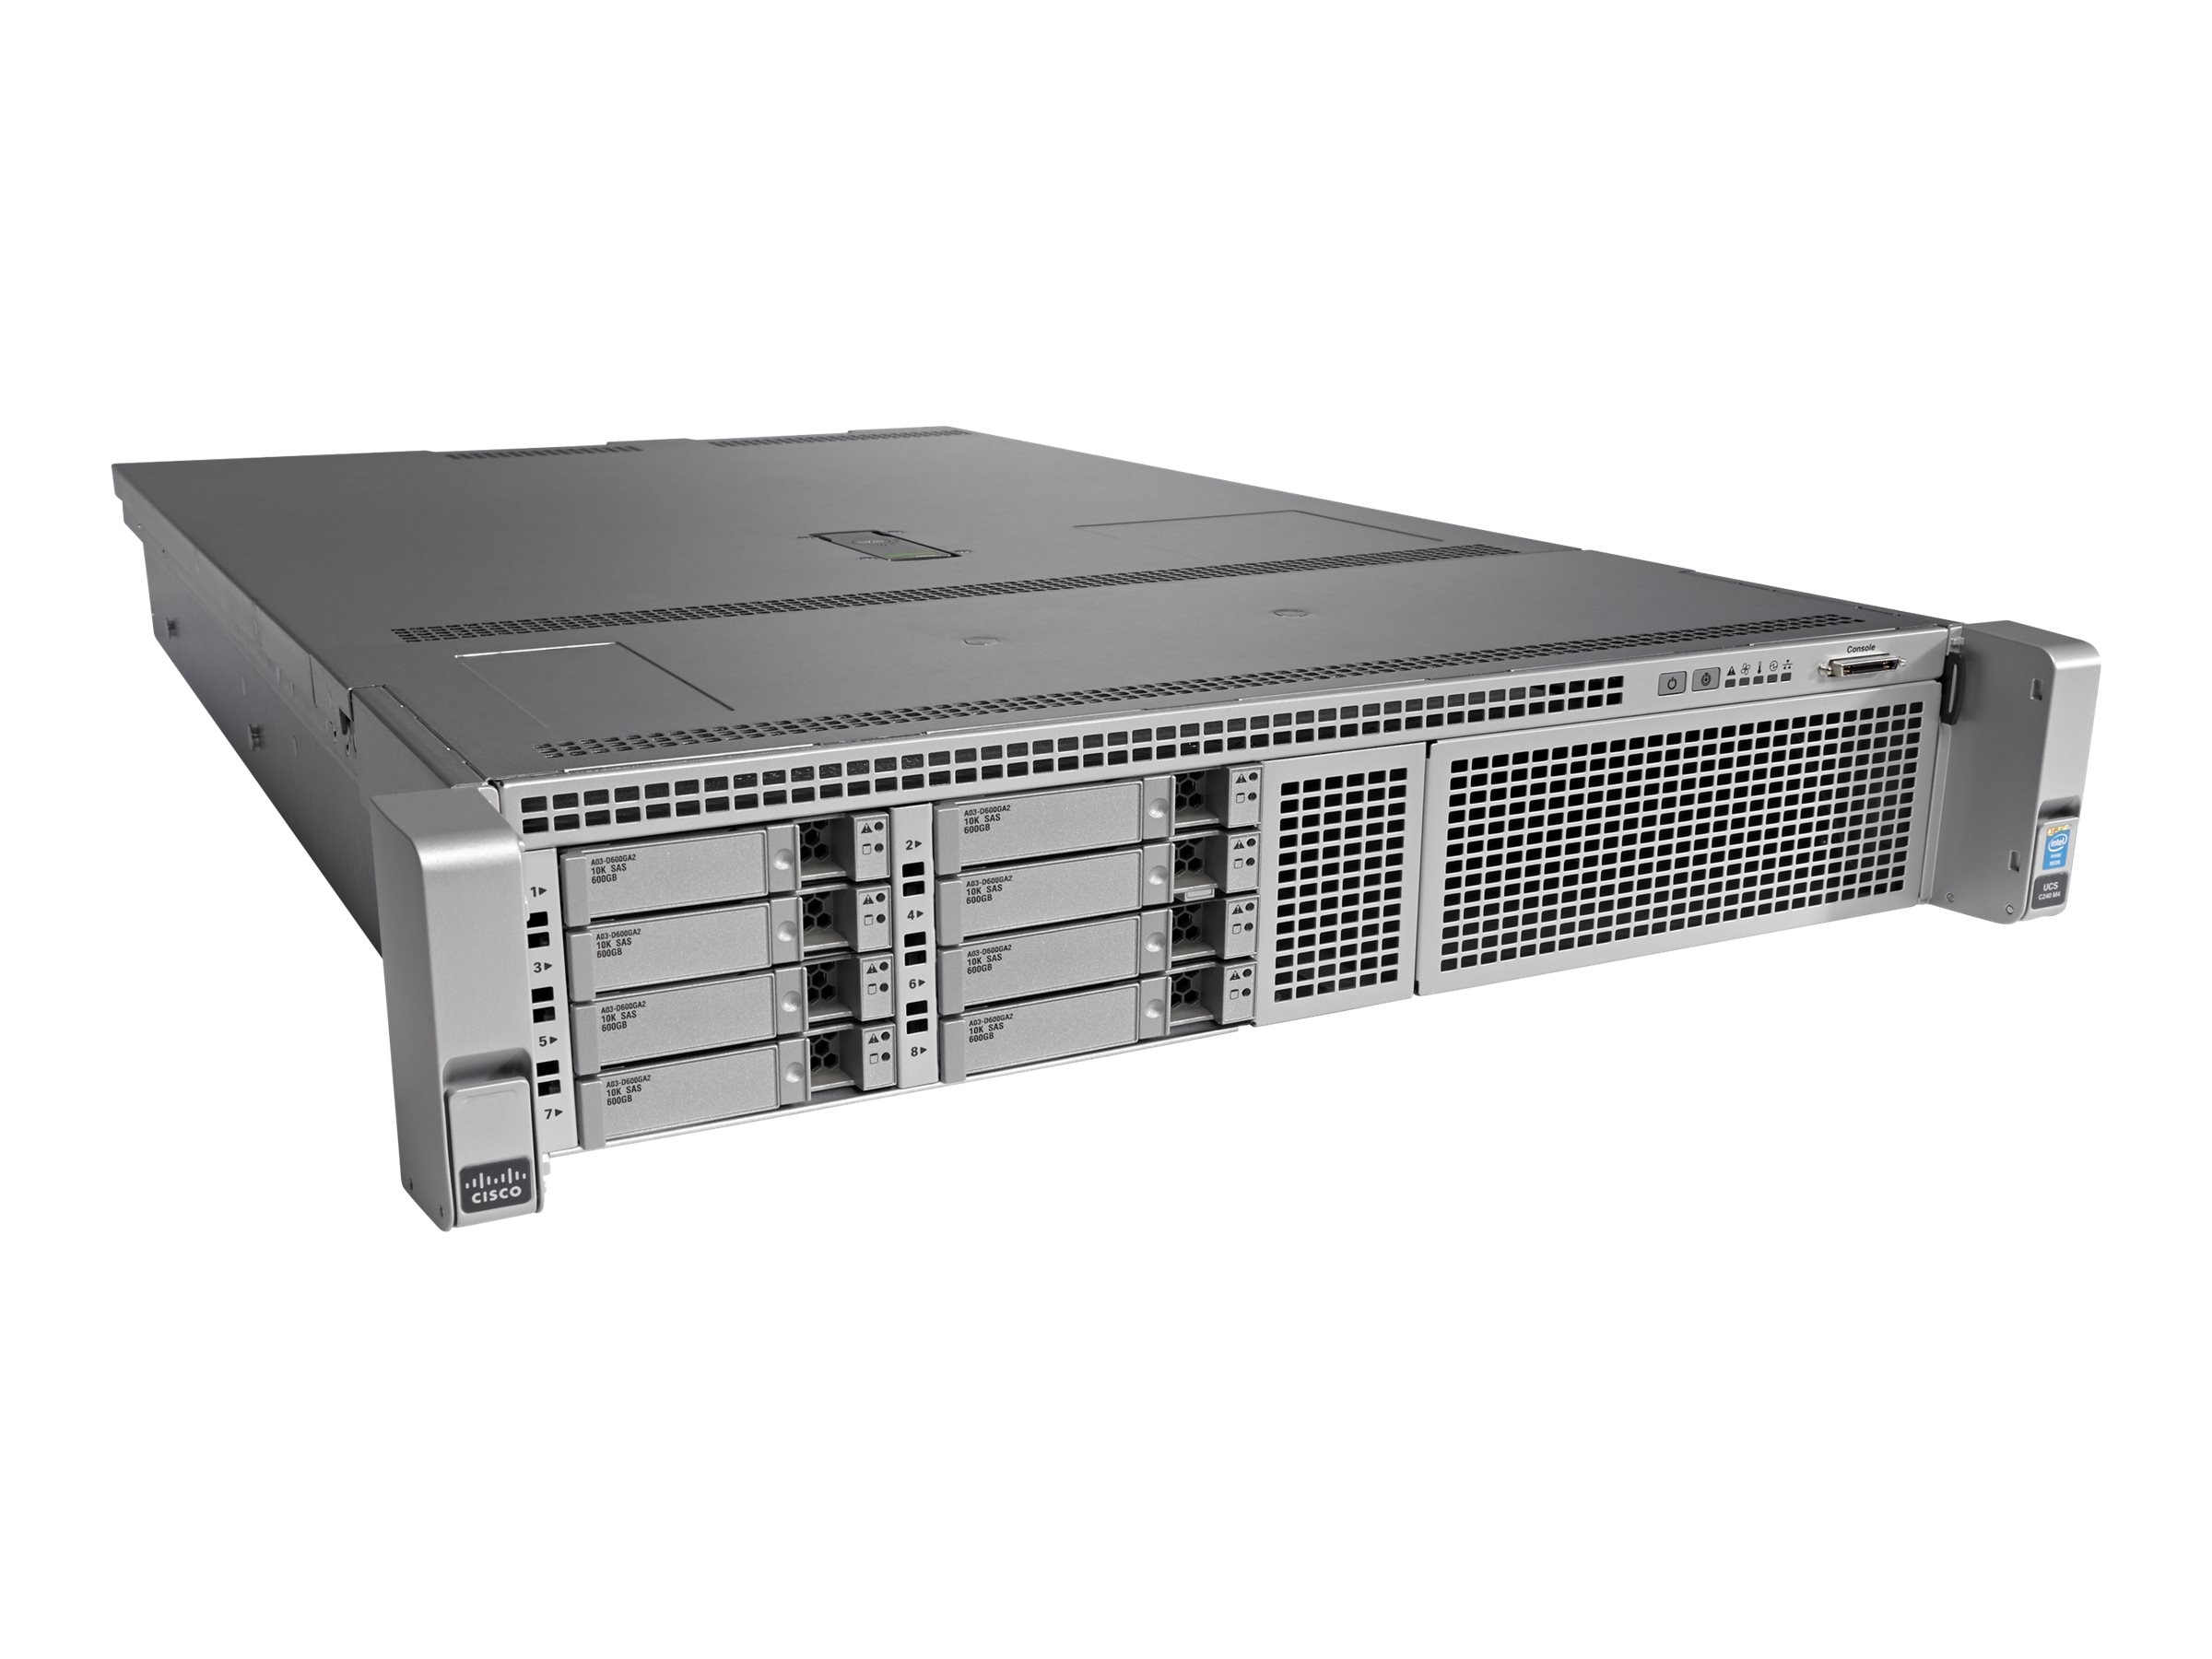 Cisco UCS SP8 C240 M4SX Value Plus Xeon E5-2670 v3